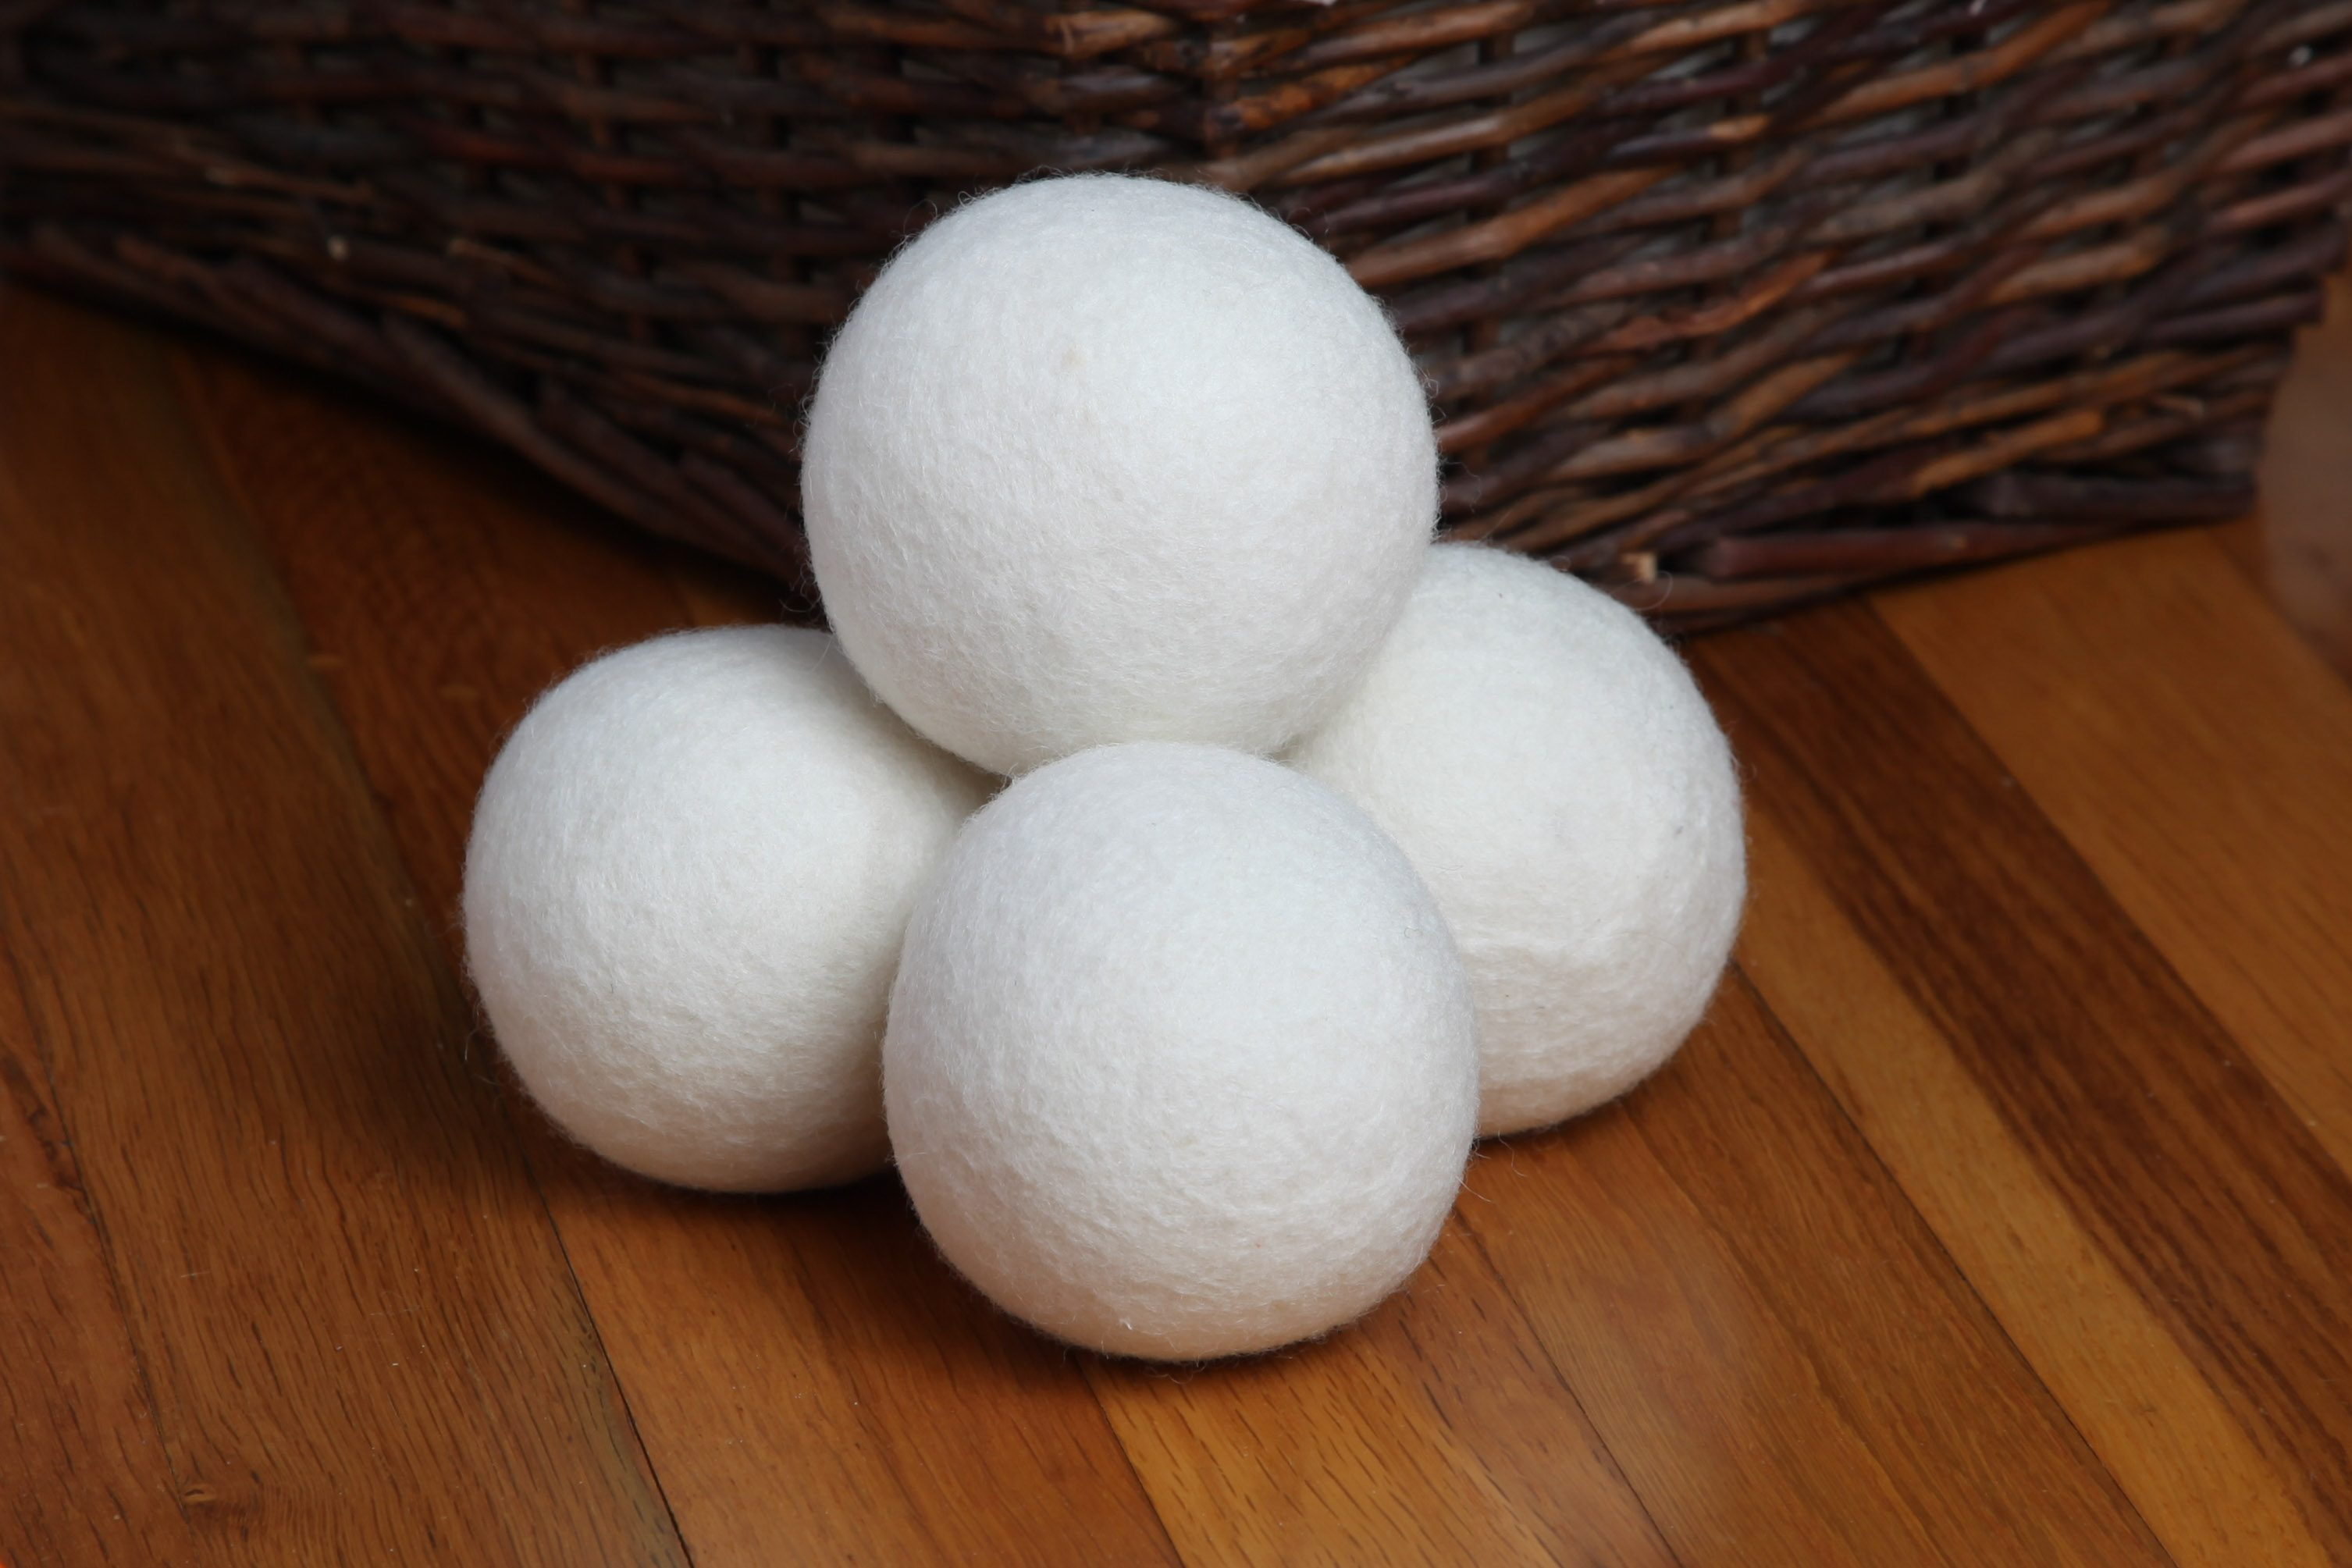 Sheep dryer ball